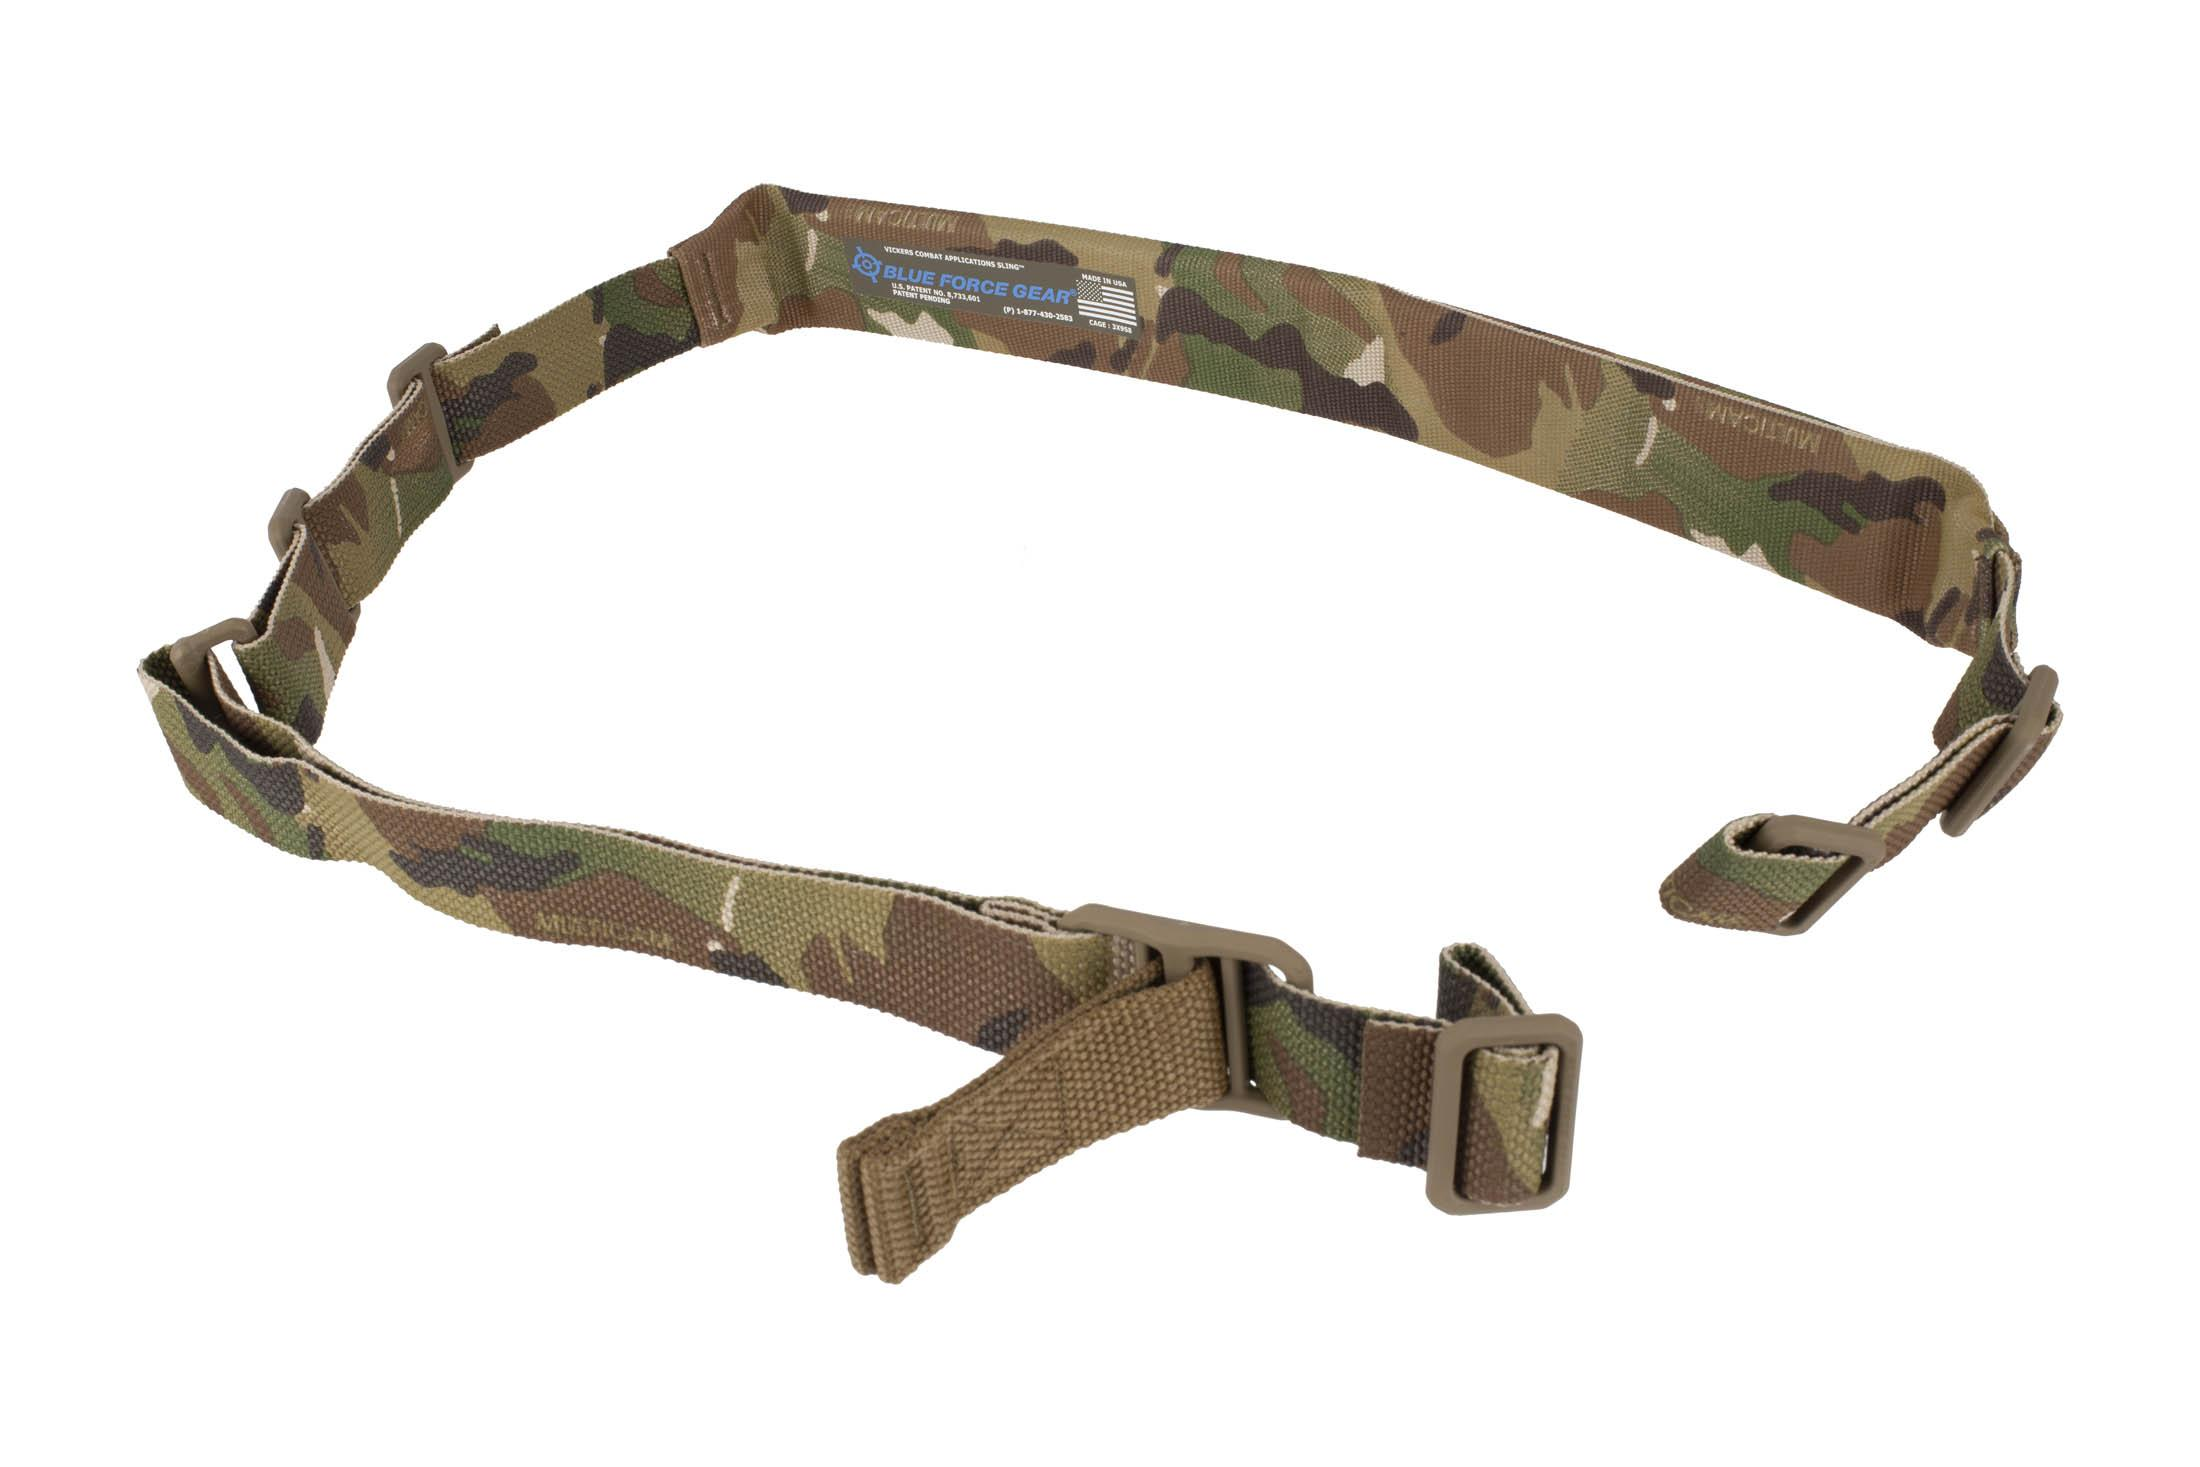 Blue Force Gear Vickers padded 2-point carbine sling in MultiCam